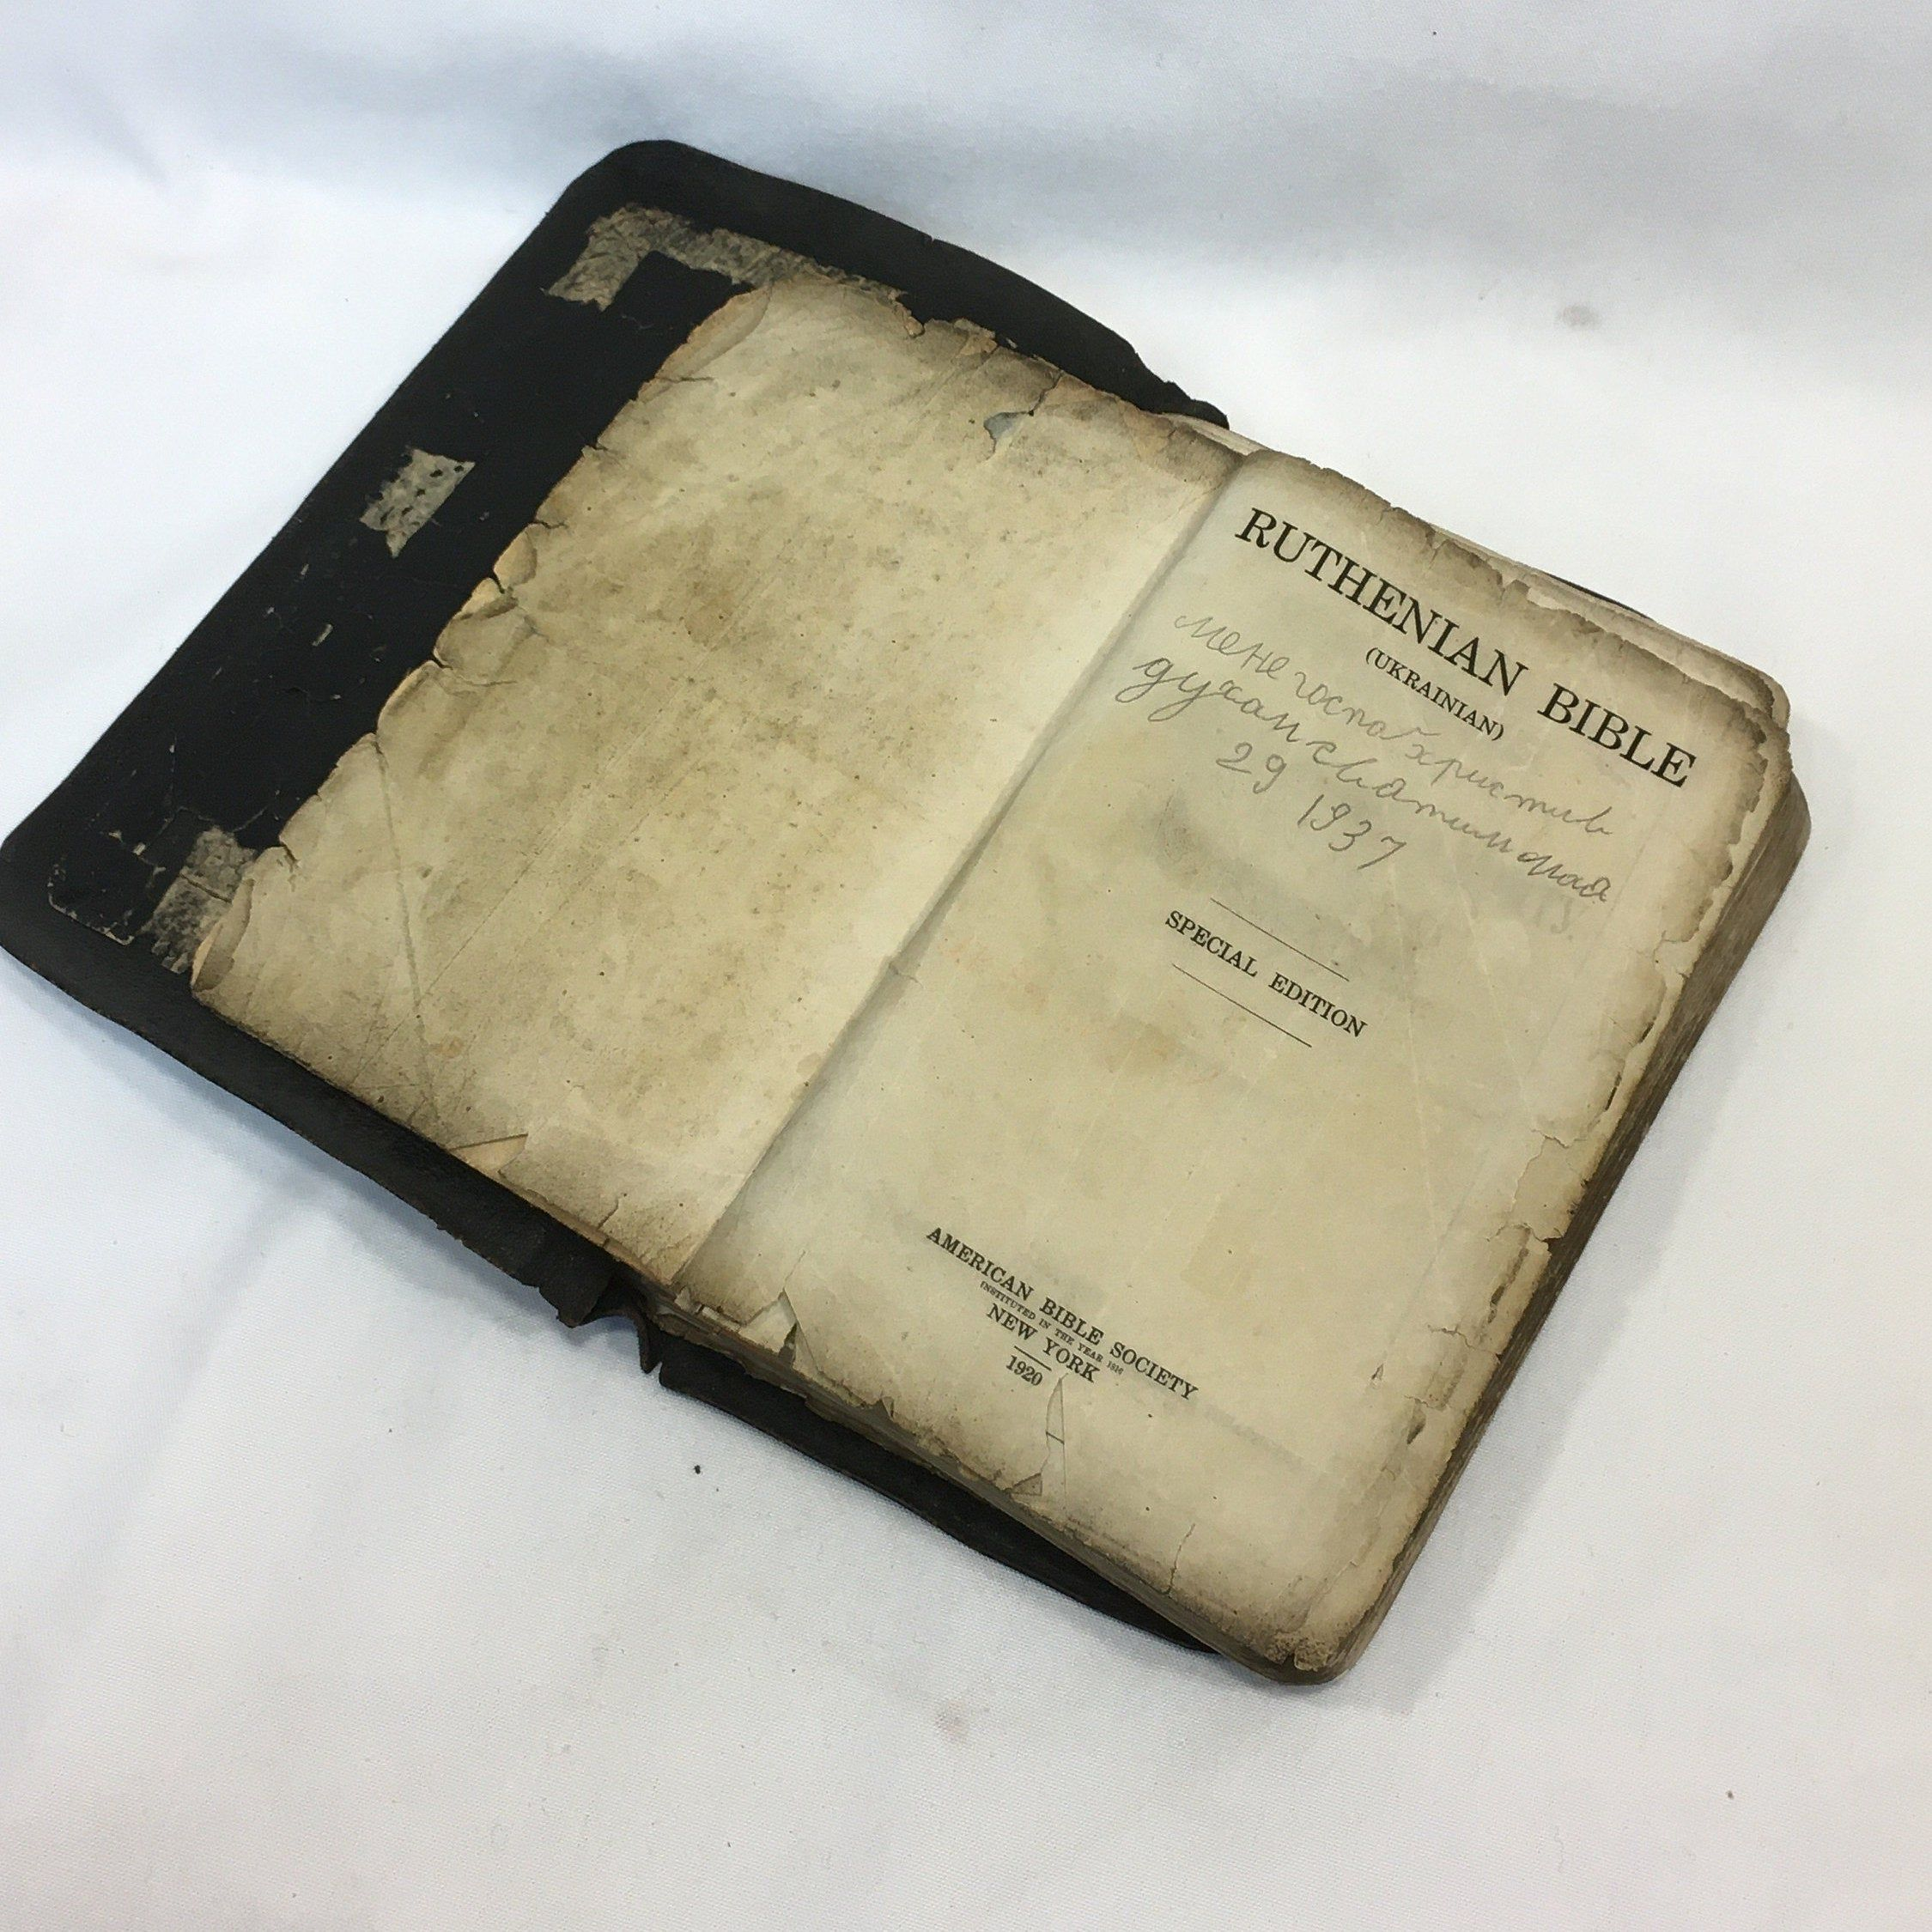 Excited To Share The Latest Addition To My Etsy Shop Vintage Ruthenian Bible Old Ruthenian Ukranian Bible 1920 Ameri Bible Society Bible Russian Language